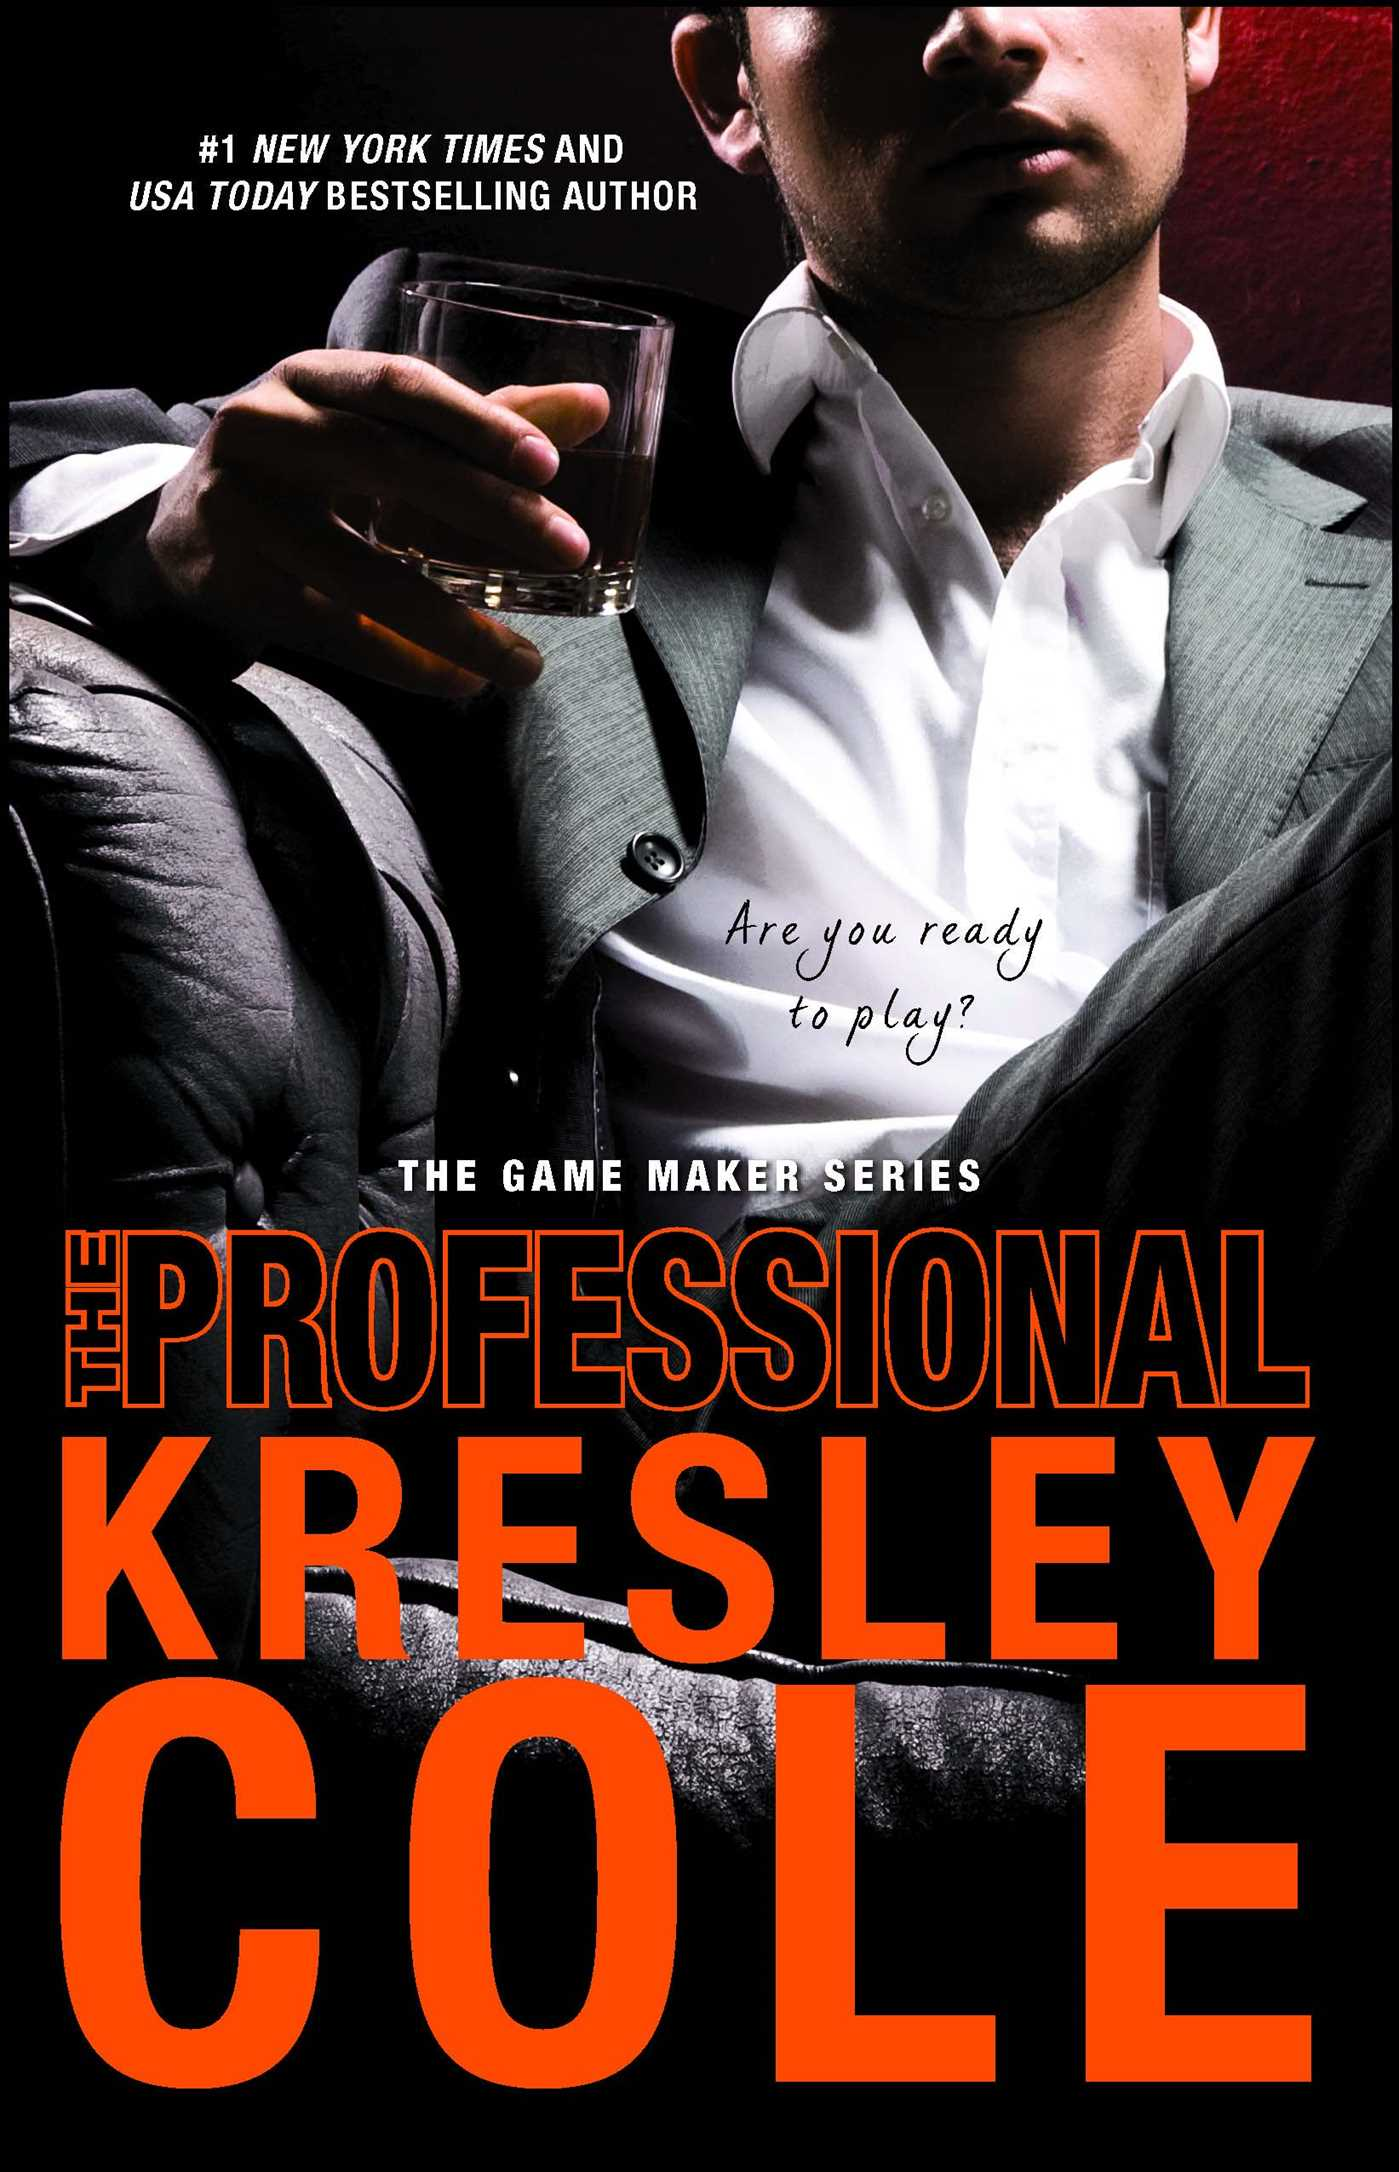 The professional 9781476762319 hr